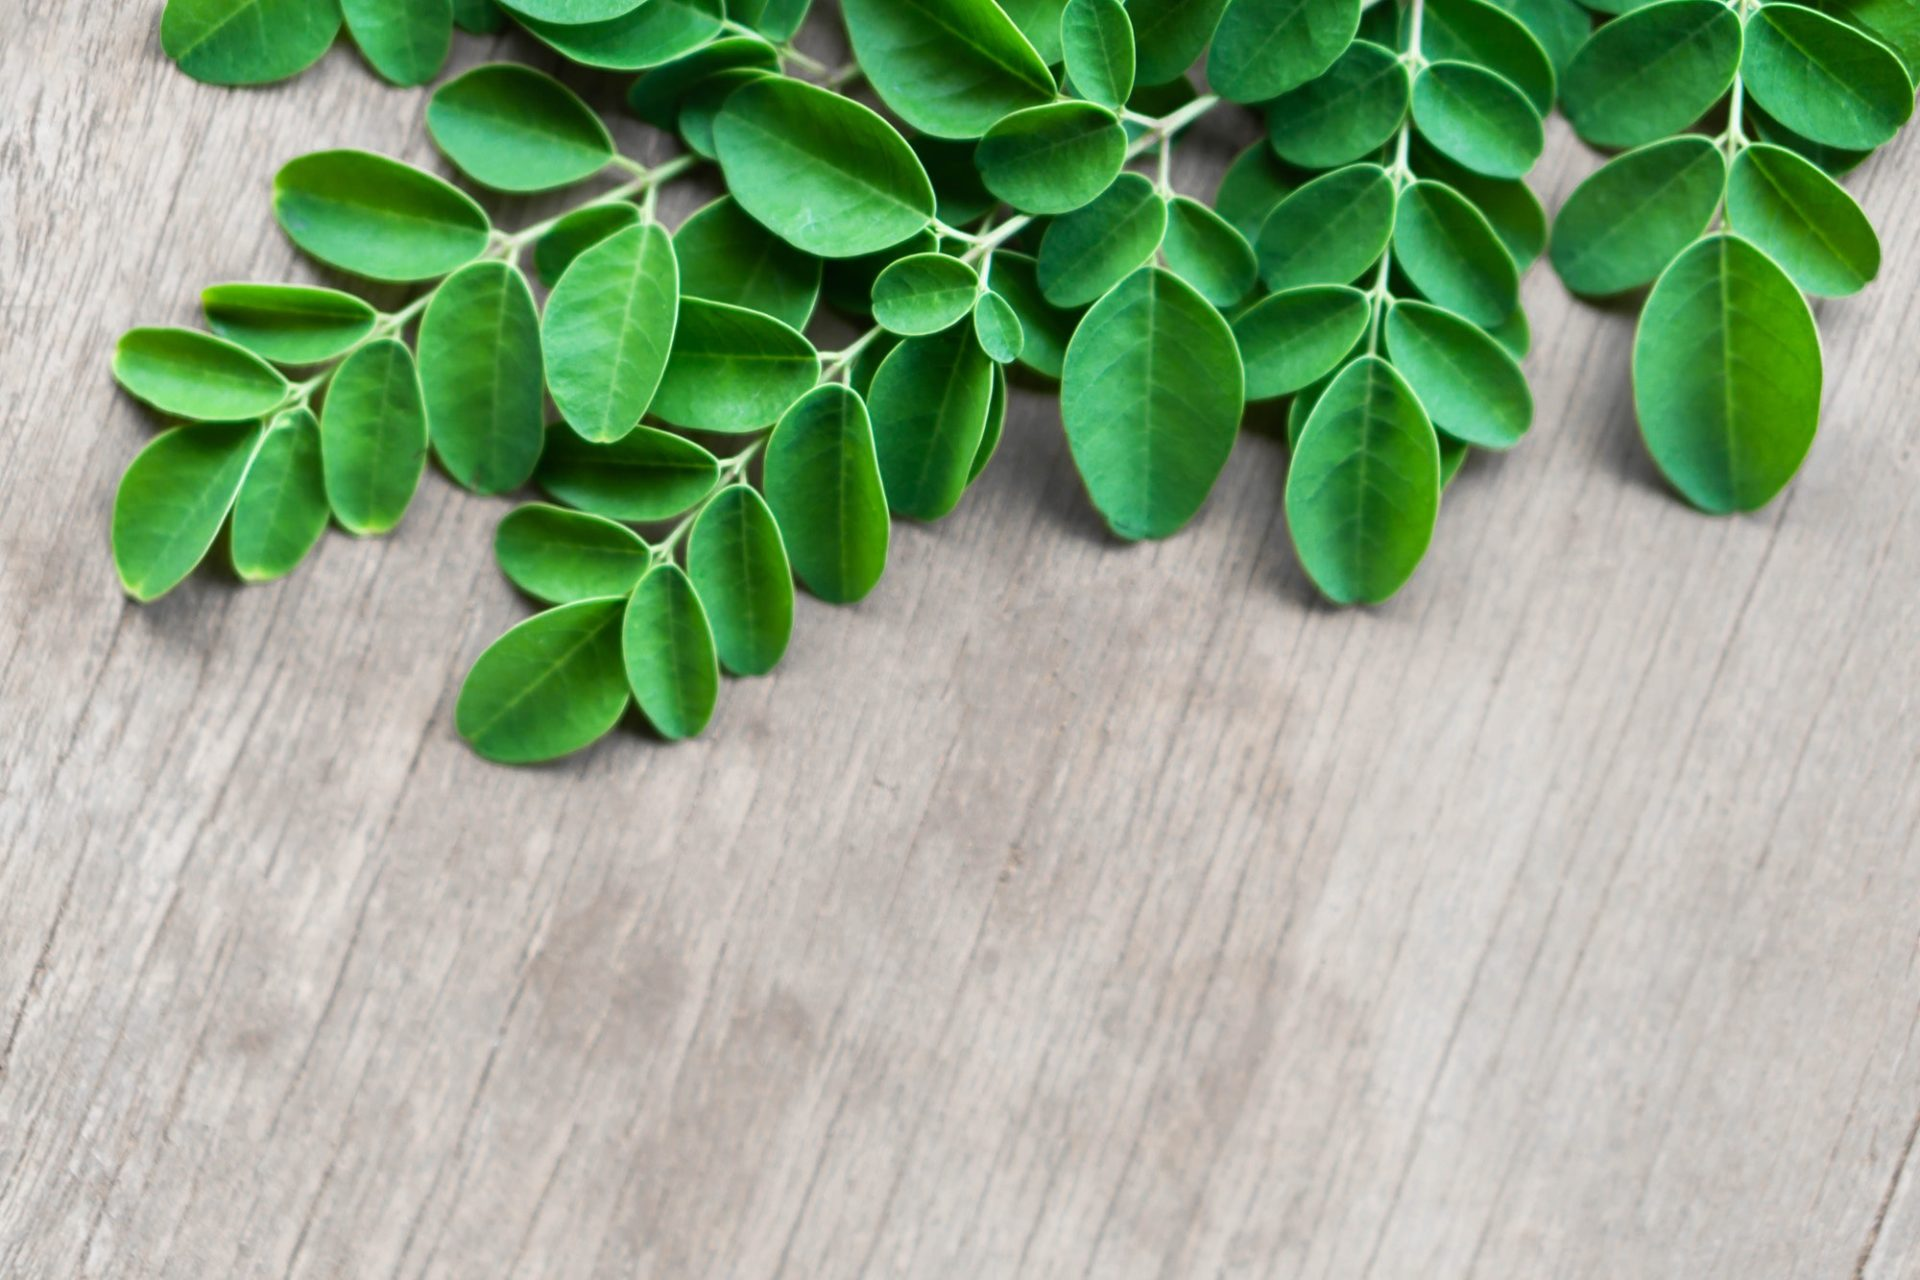 Closeup top view moringa leaves branch on wood background, herb and medical concept